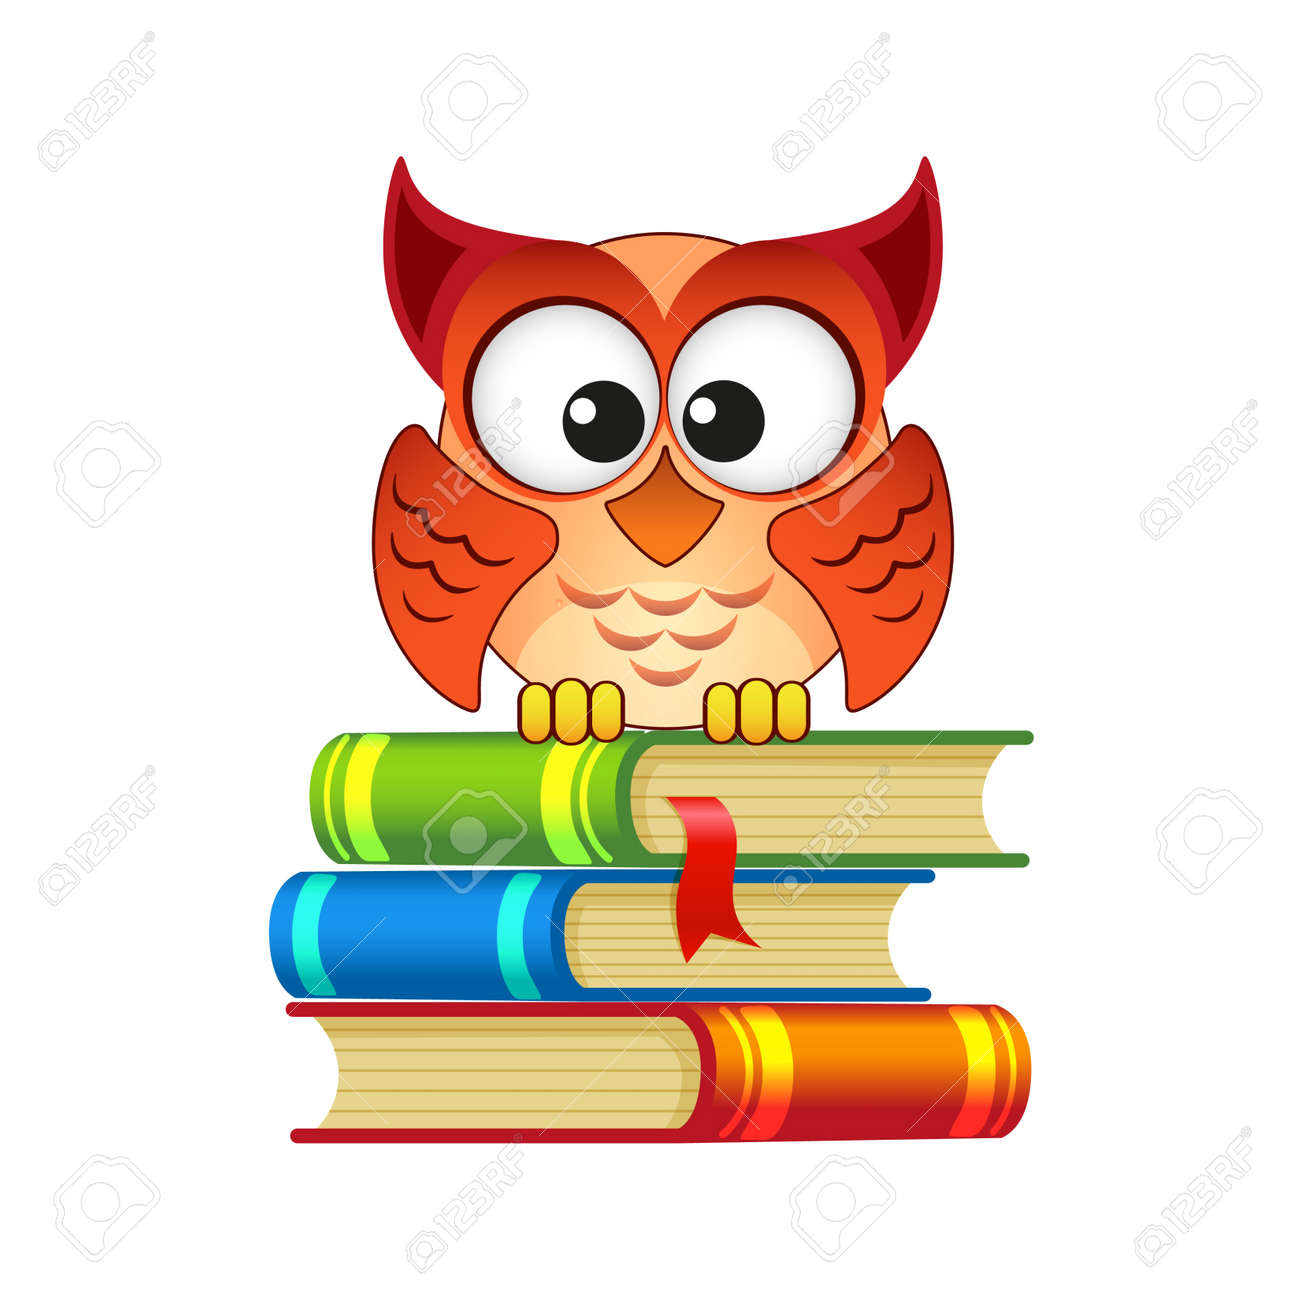 owl sitting on a pile of books royalty free cliparts vectors and rh 123rf com Book Outline Clip Art Math Book Clip Art